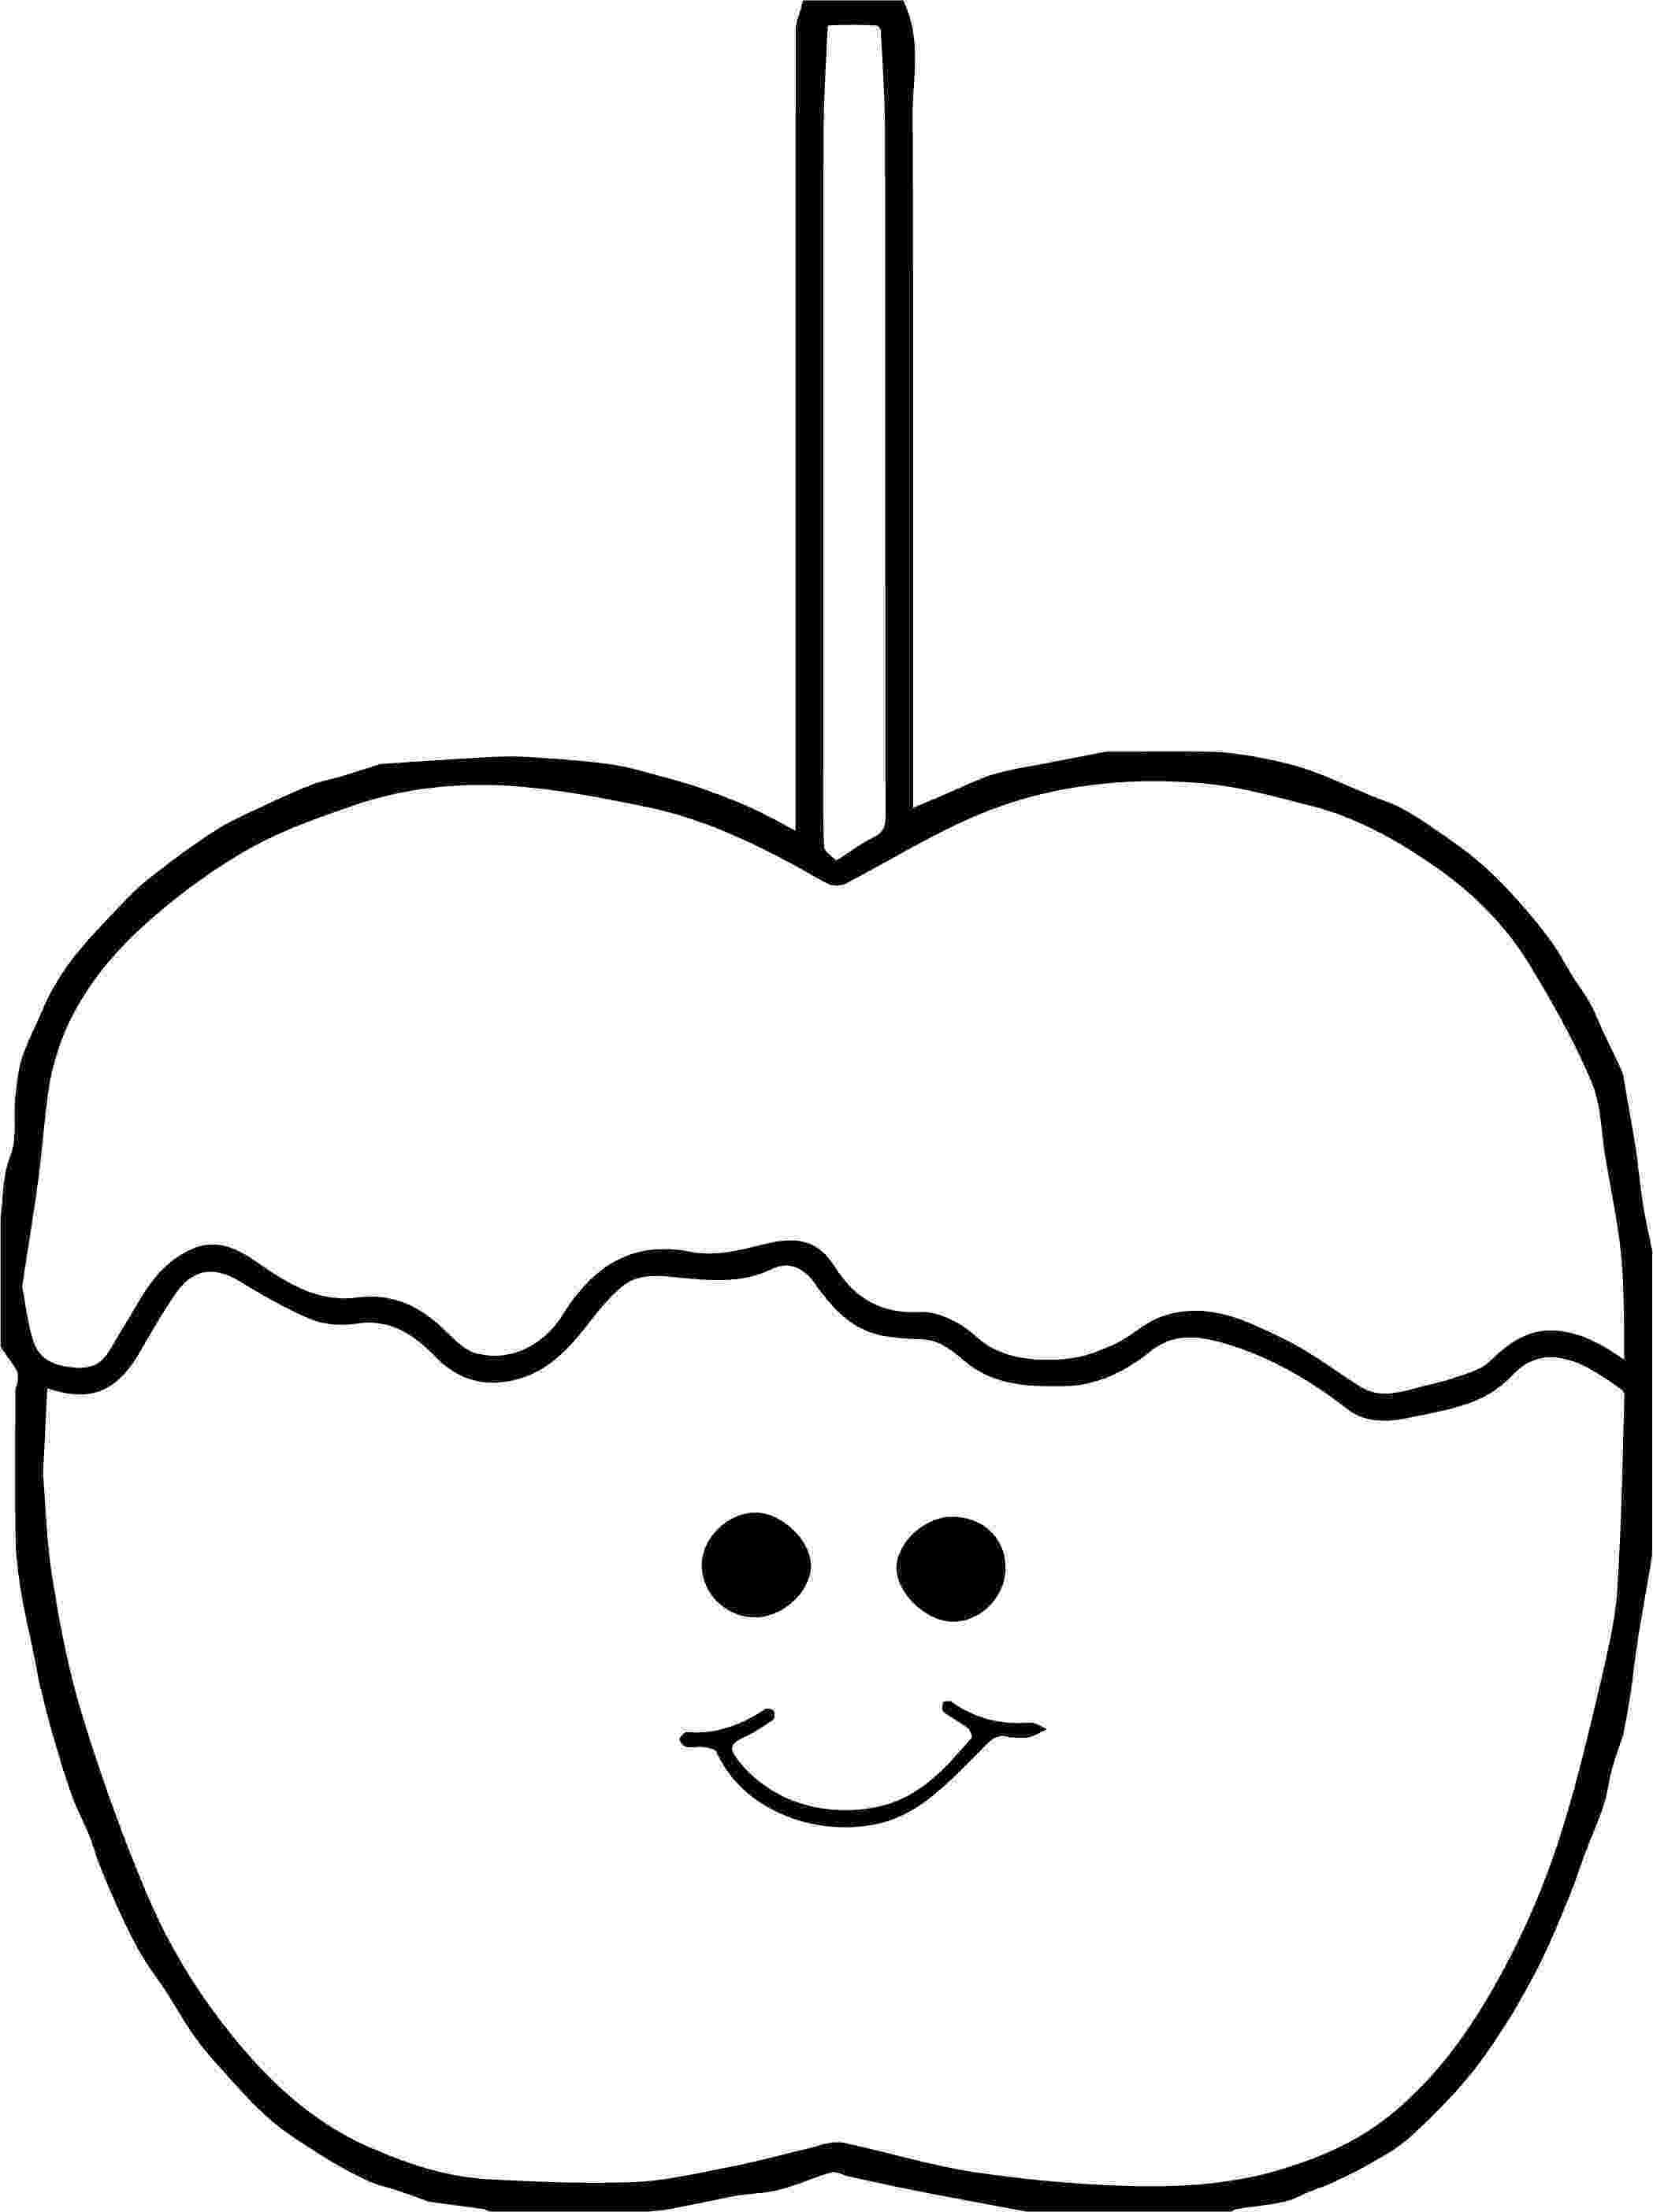 apple coloring images awesome cute caramel apple coloring page apple coloring coloring apple images